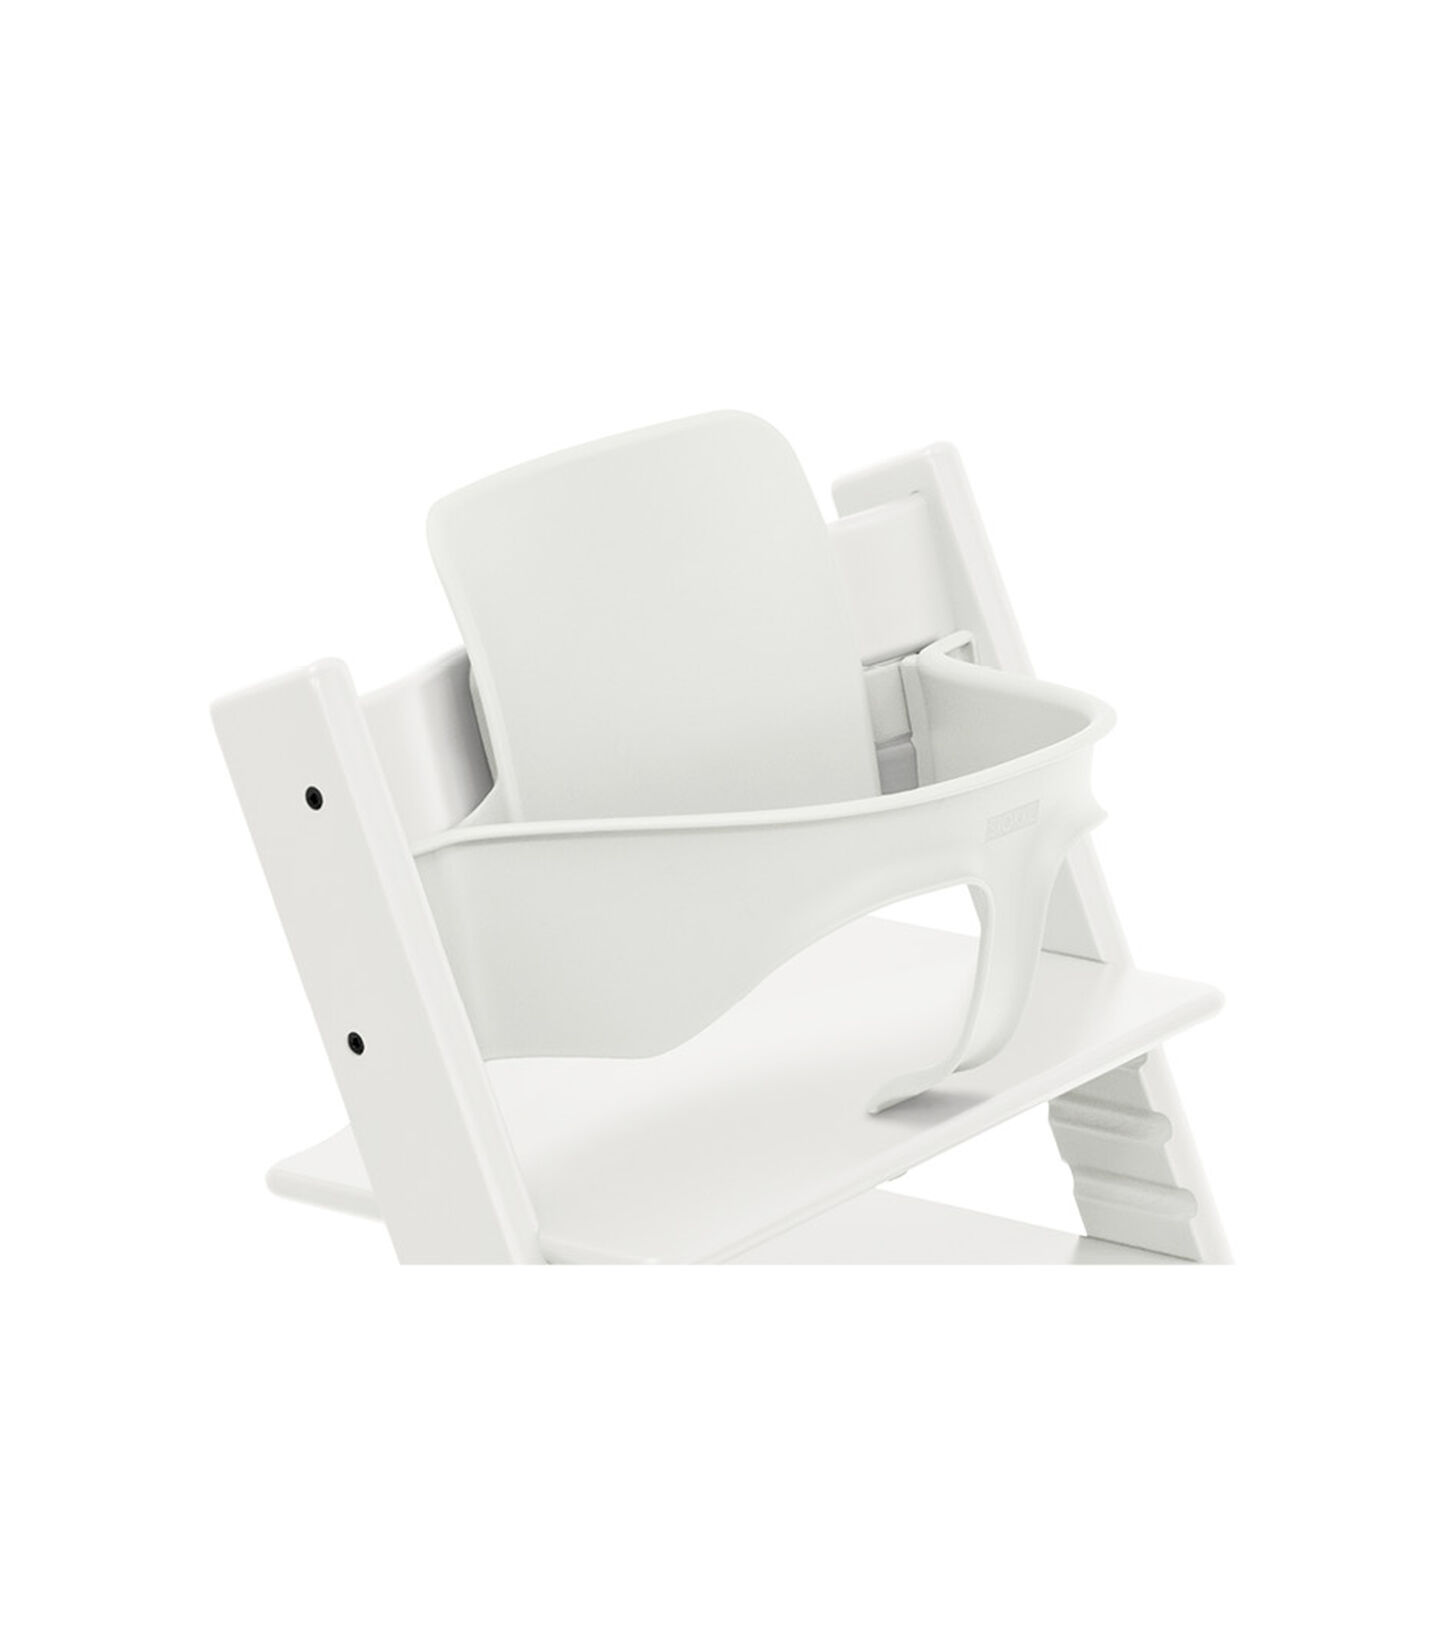 Tripp Trapp® Baby Set Blanco, Blanco, mainview view 2